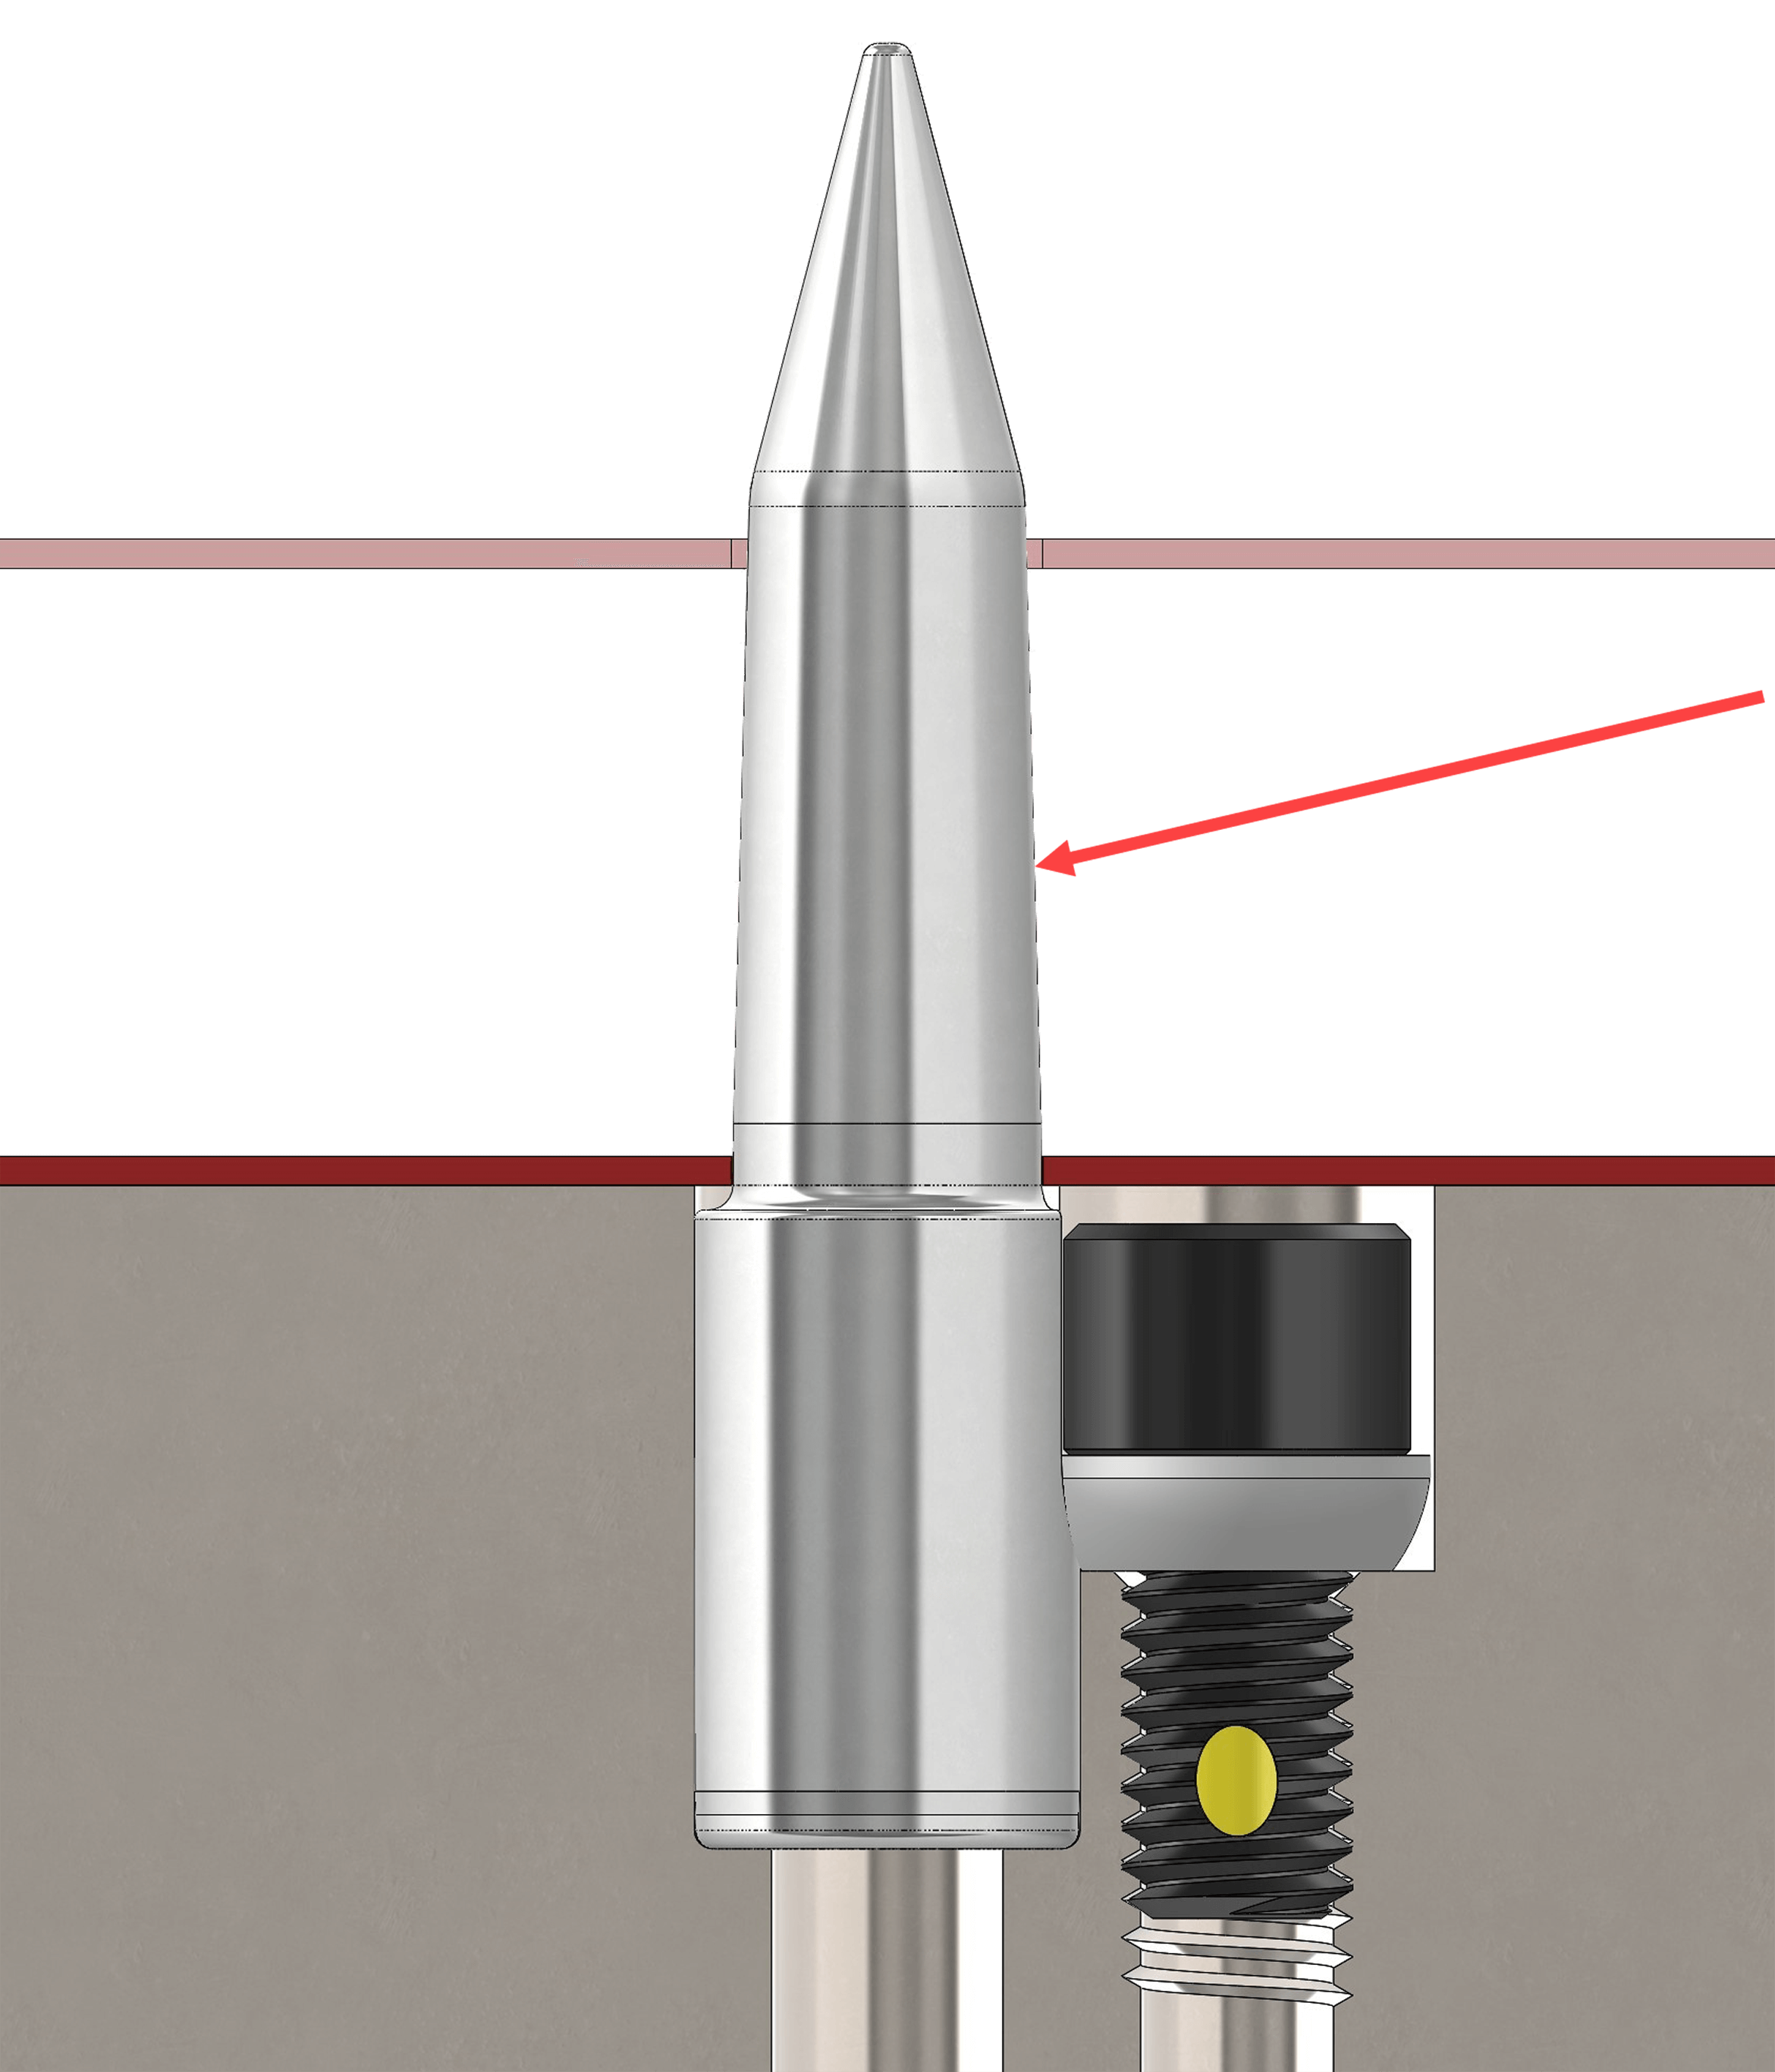 Tapered Pilot illustration with ideal 3 degree taper